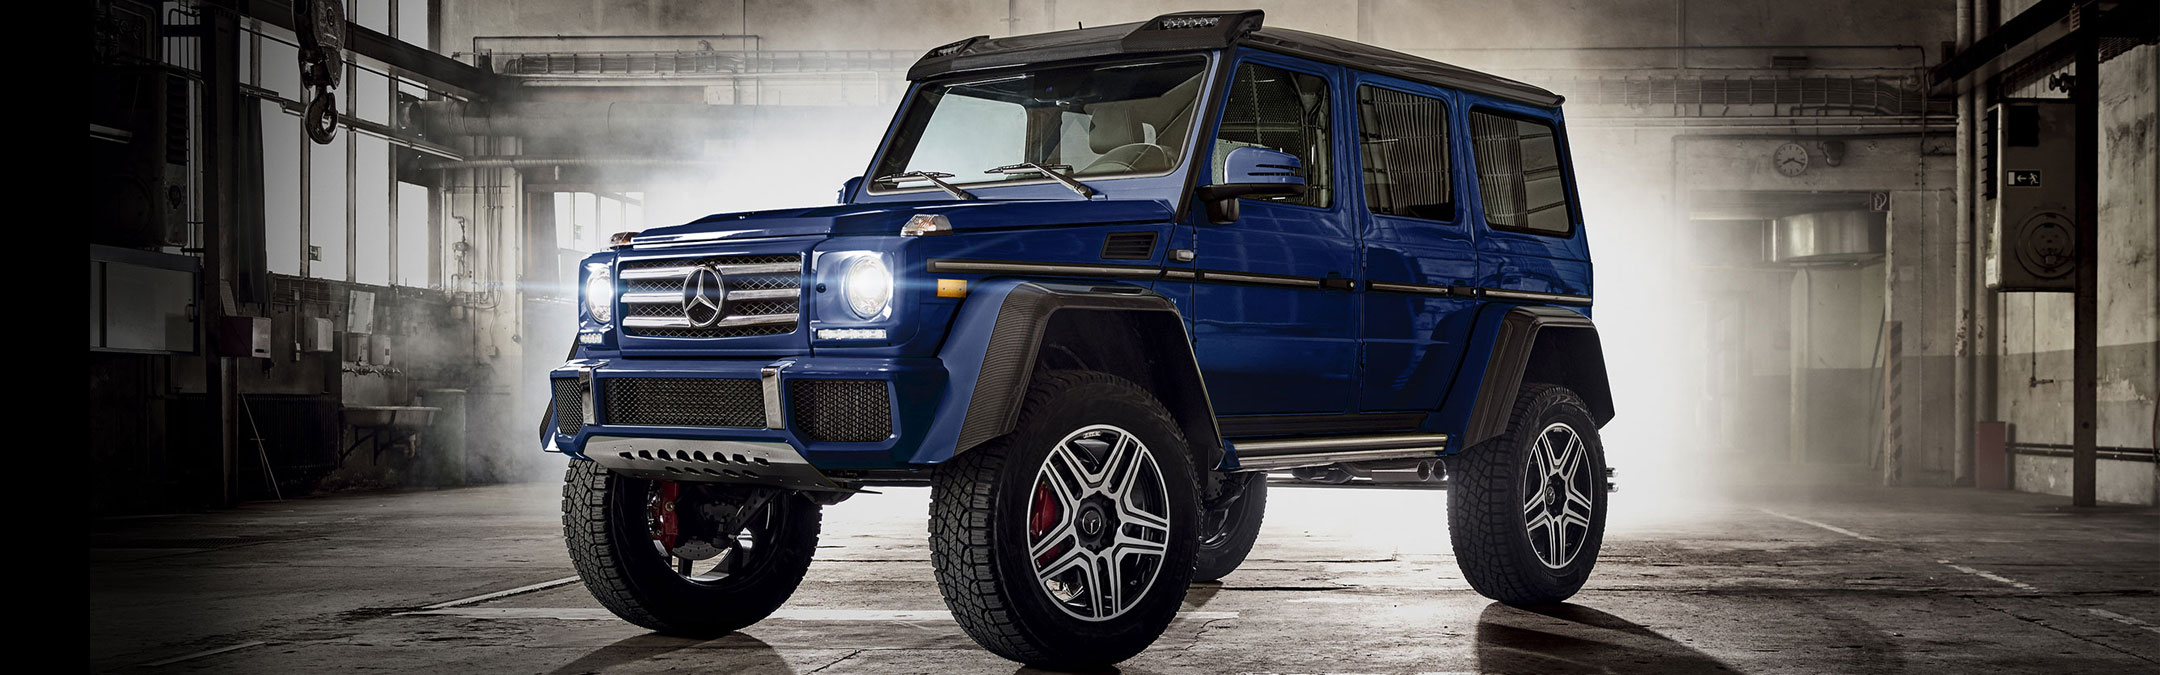 2018 mercedes amg g class suv mercedes benz for Mercedes benz jeep g class